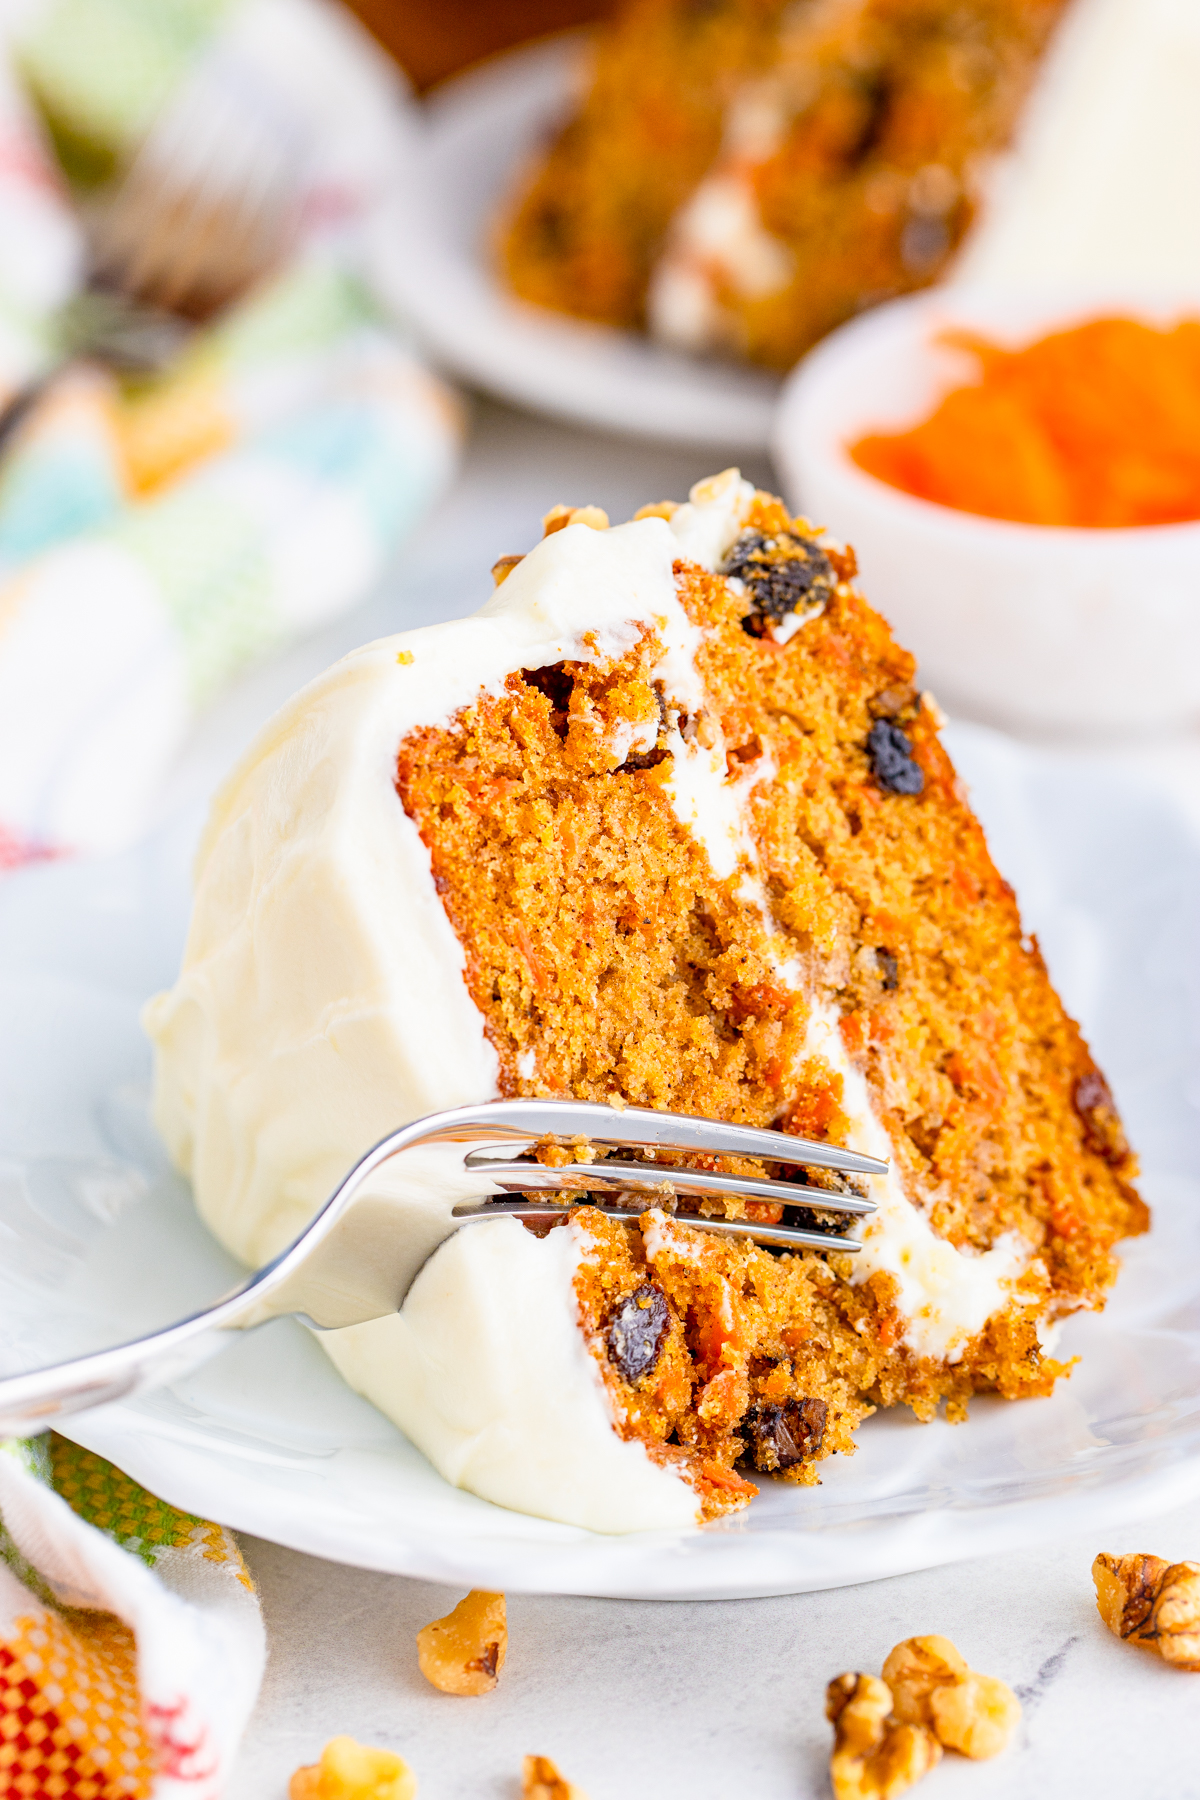 Fork cutting into slice of Layered Carrot Cake